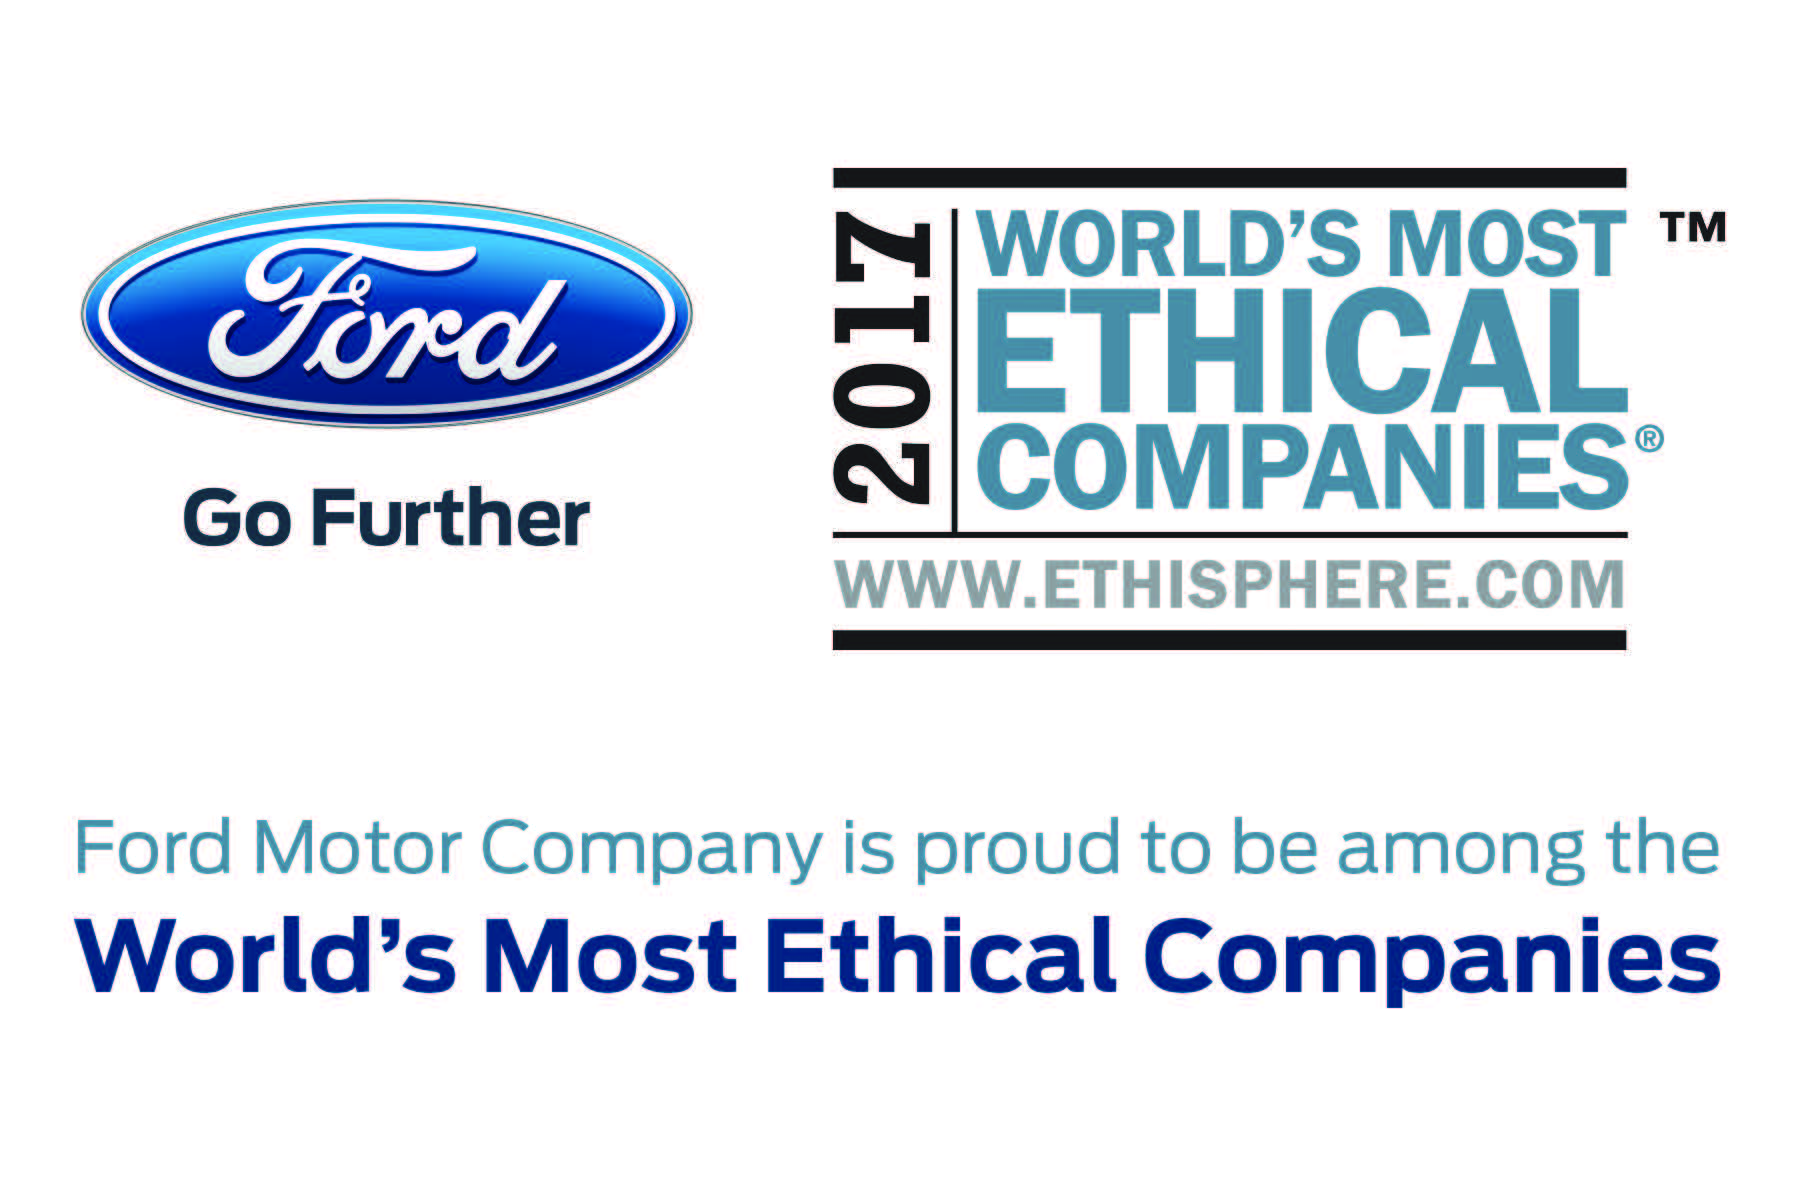 2017 marks the eighth year in a row Ford Motor Company has been named one of the World's Most Ethical Companies by the Ethisphere Institute